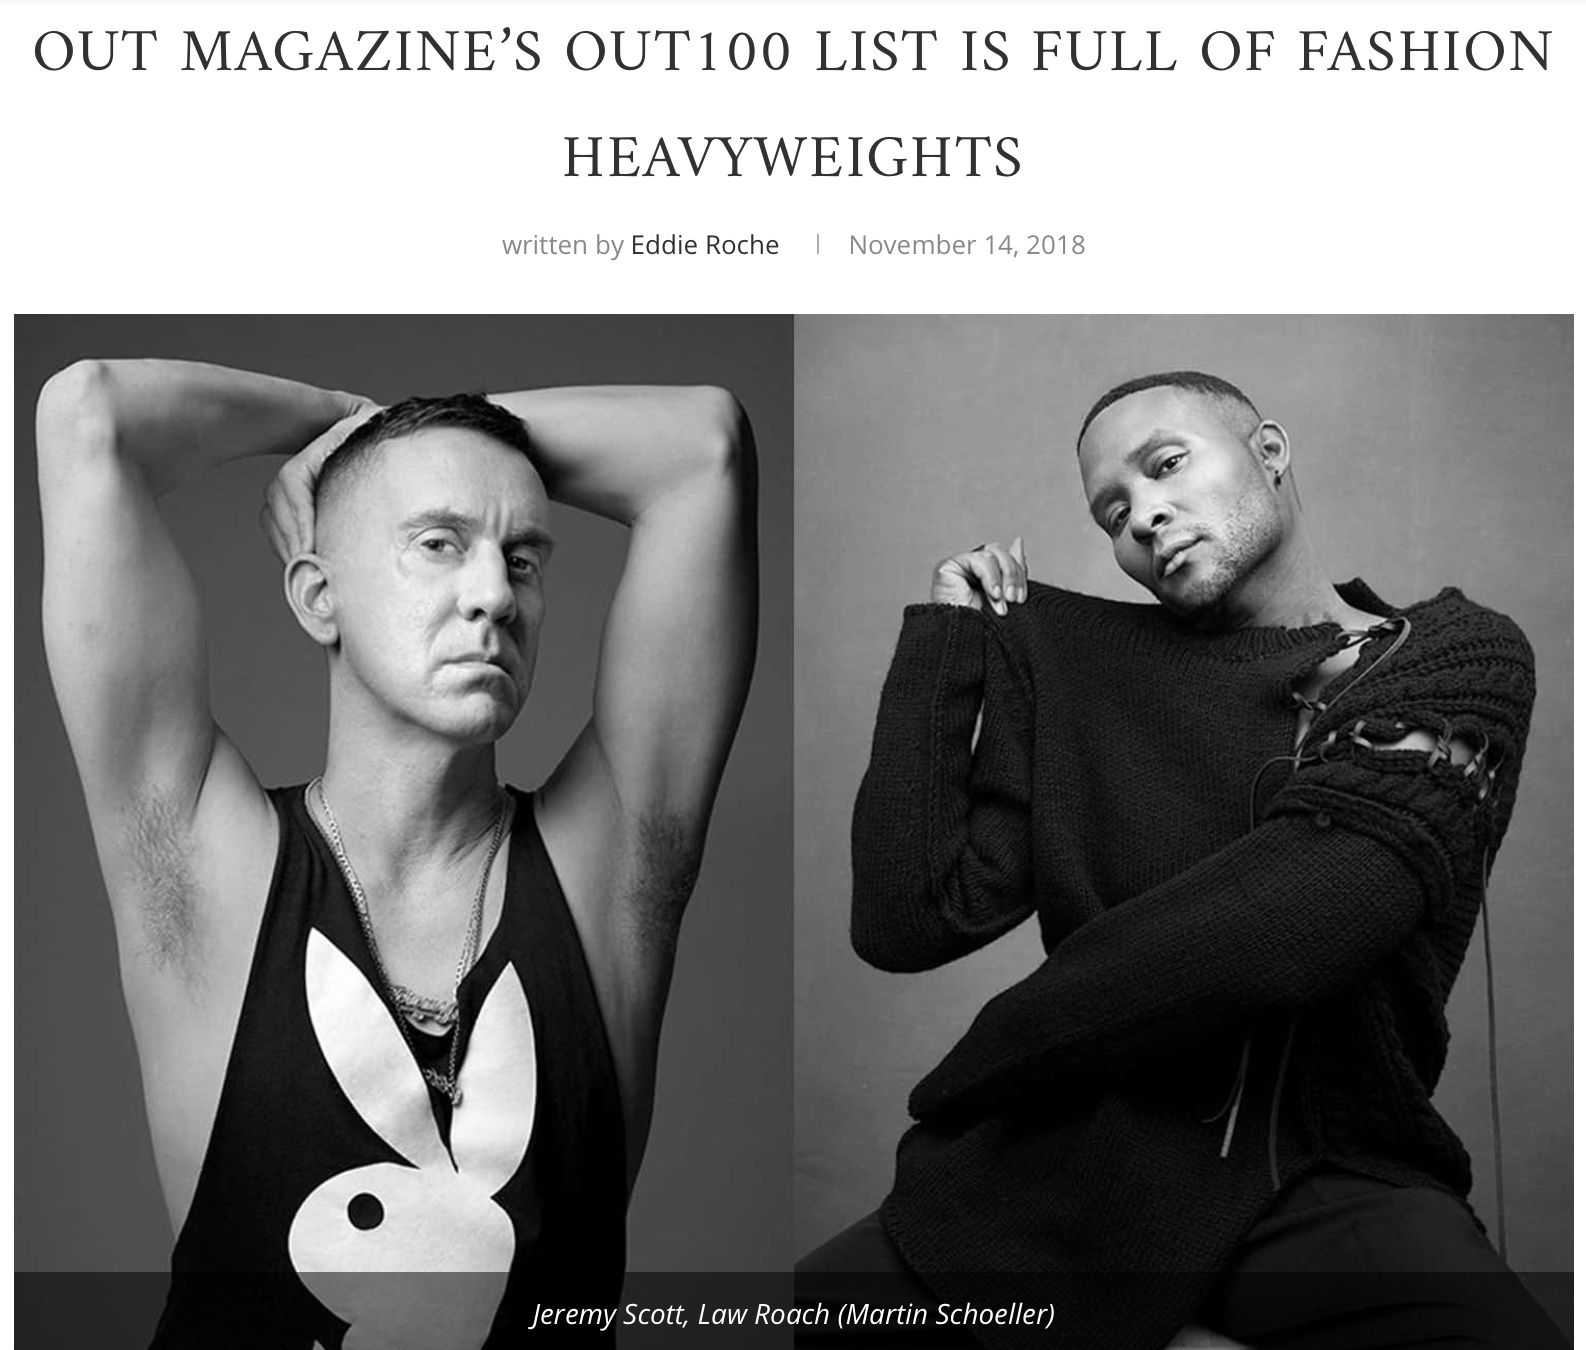 """THE DAILY FRONT ROW    """"'It was a thrill to include such a widespread group of honorees from the fashion community,' R. Kurt Osenlund, the title's executive editor, told  The Daily.  'Fashion is more diverse and reflective of LGBTQ people than ever before, and we are honored to reflect that in the Out100.'"""""""